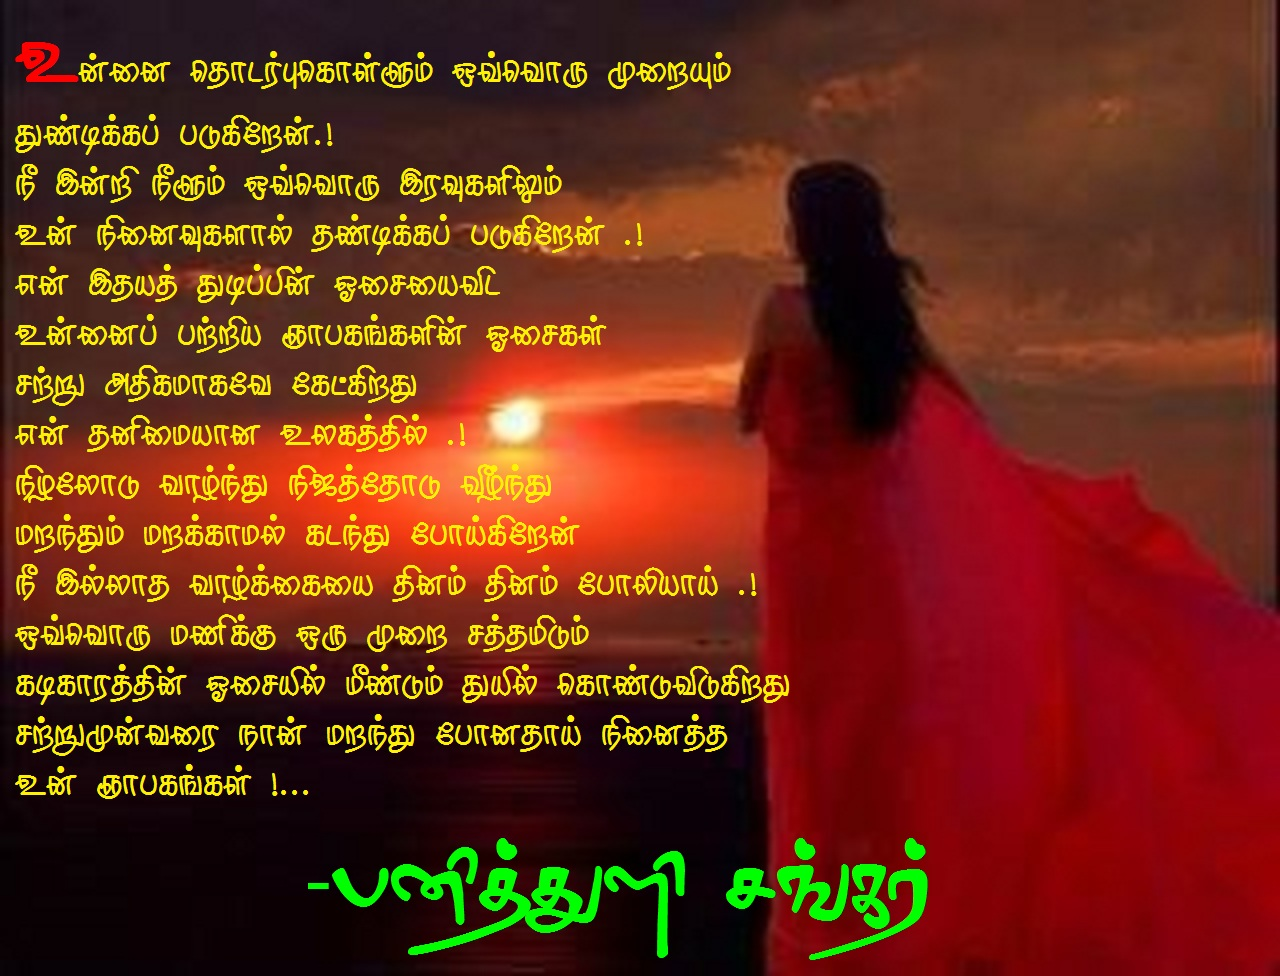 Kavithai Tamil - Tamil Kavithai, Kavithai, Kavithai Images